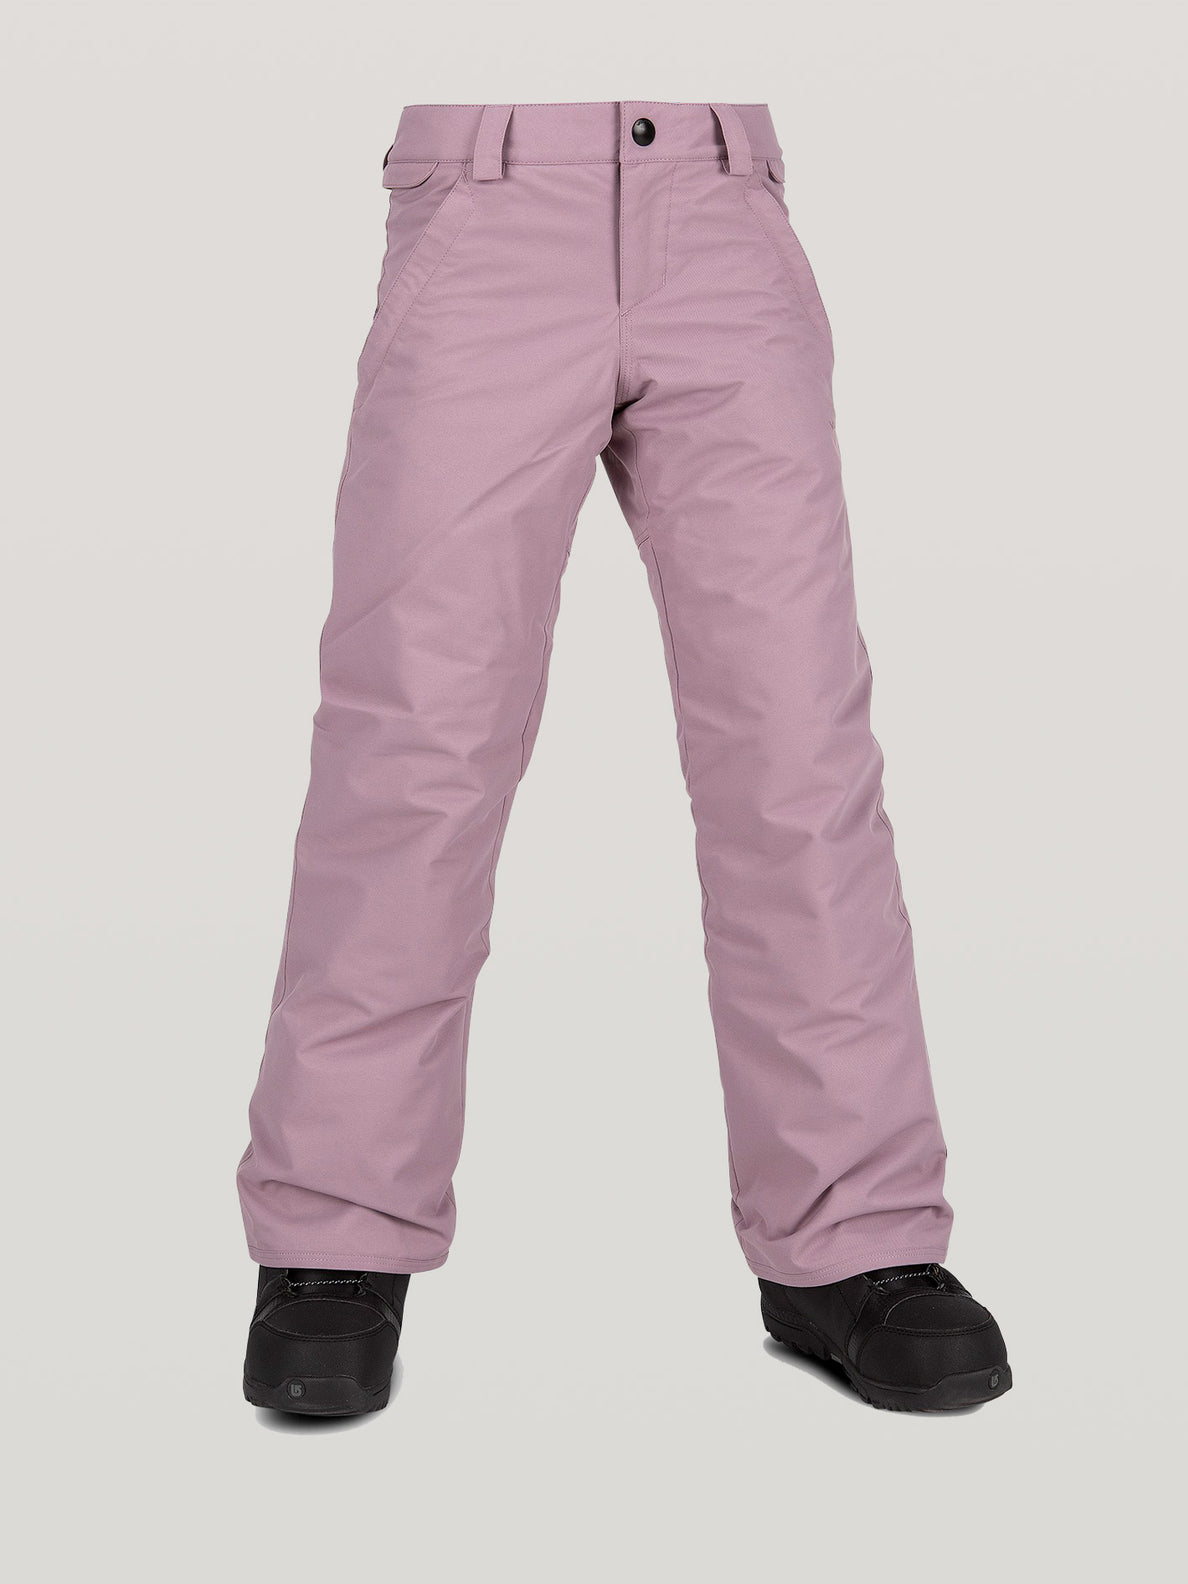 Girls Youth Frochickidee Ins Pant - Purple Haze